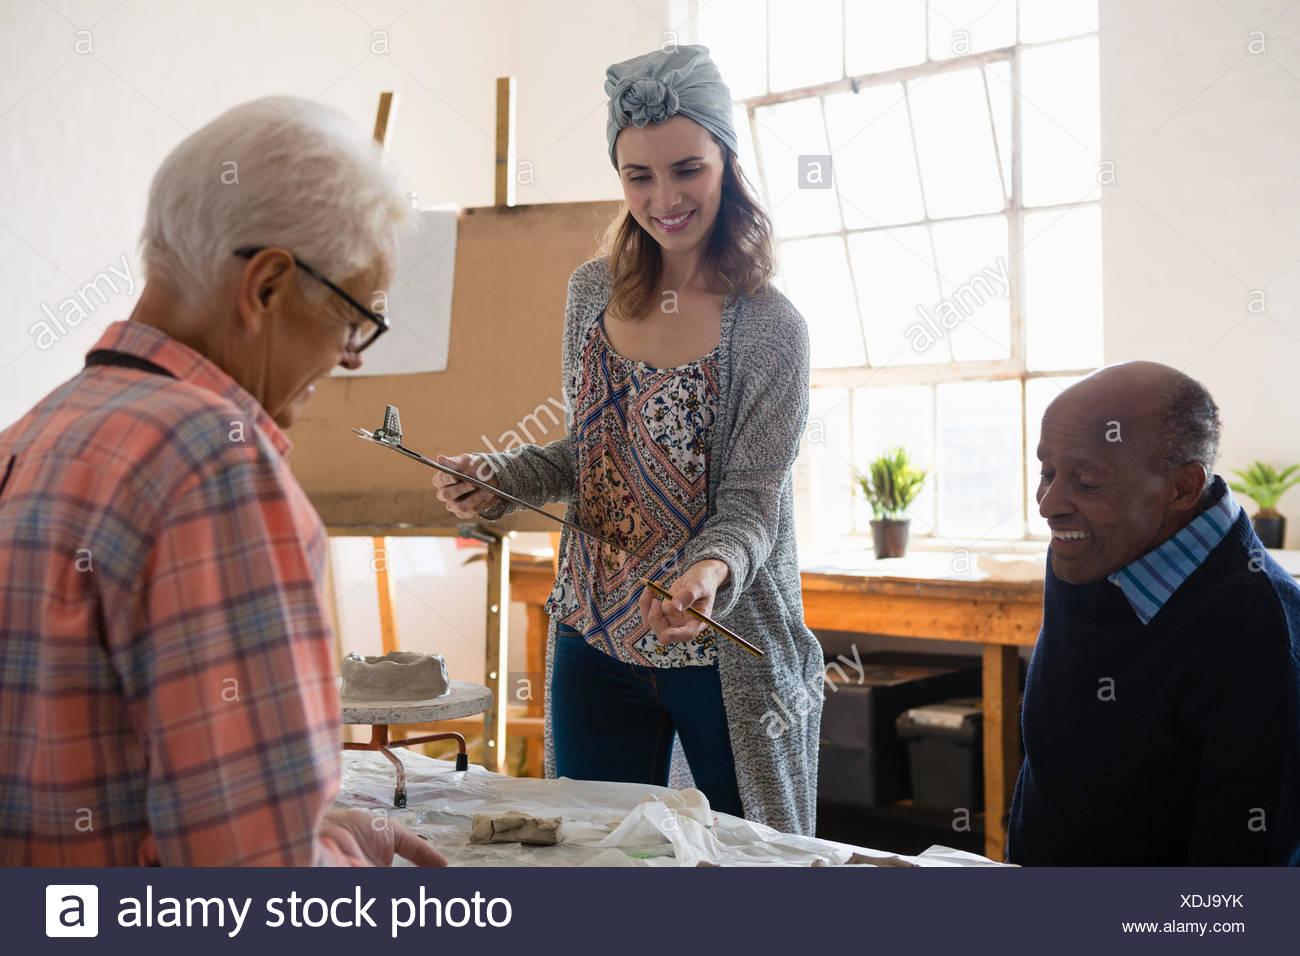 Smiling female holding clipboard while talking with male artists in art class - Stock Image